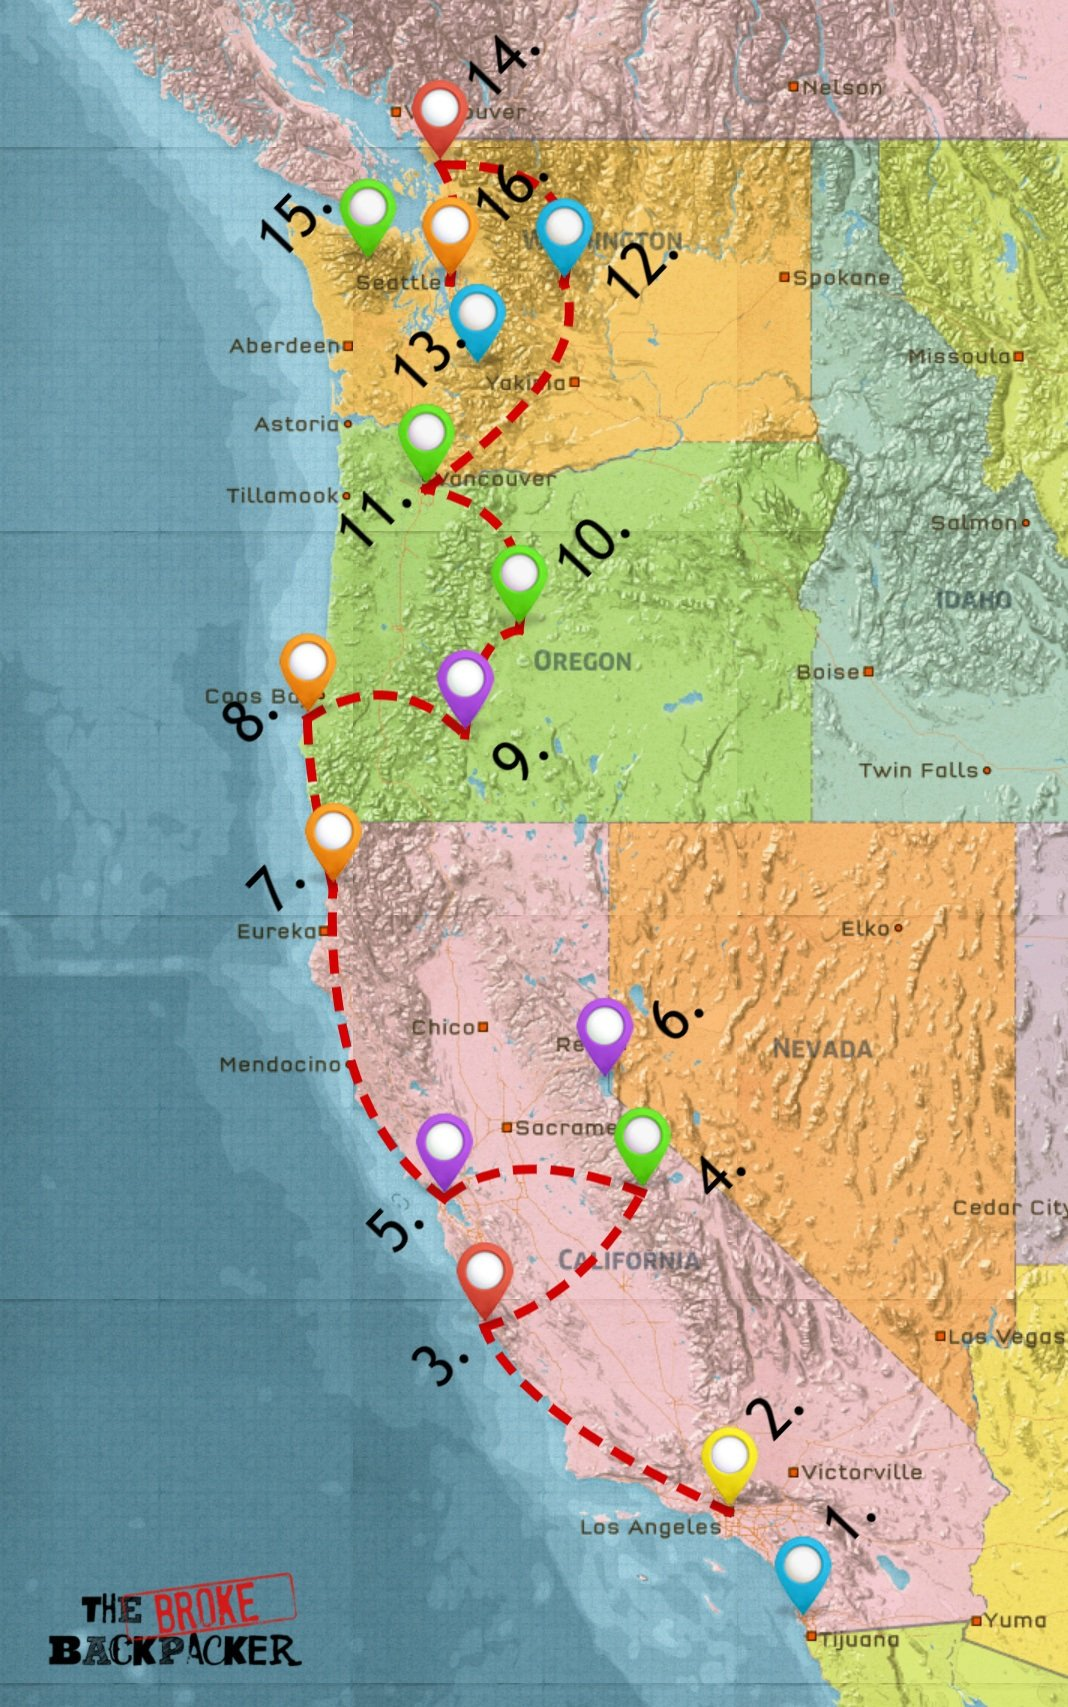 map of west coast road trip itinerary 3 weeks